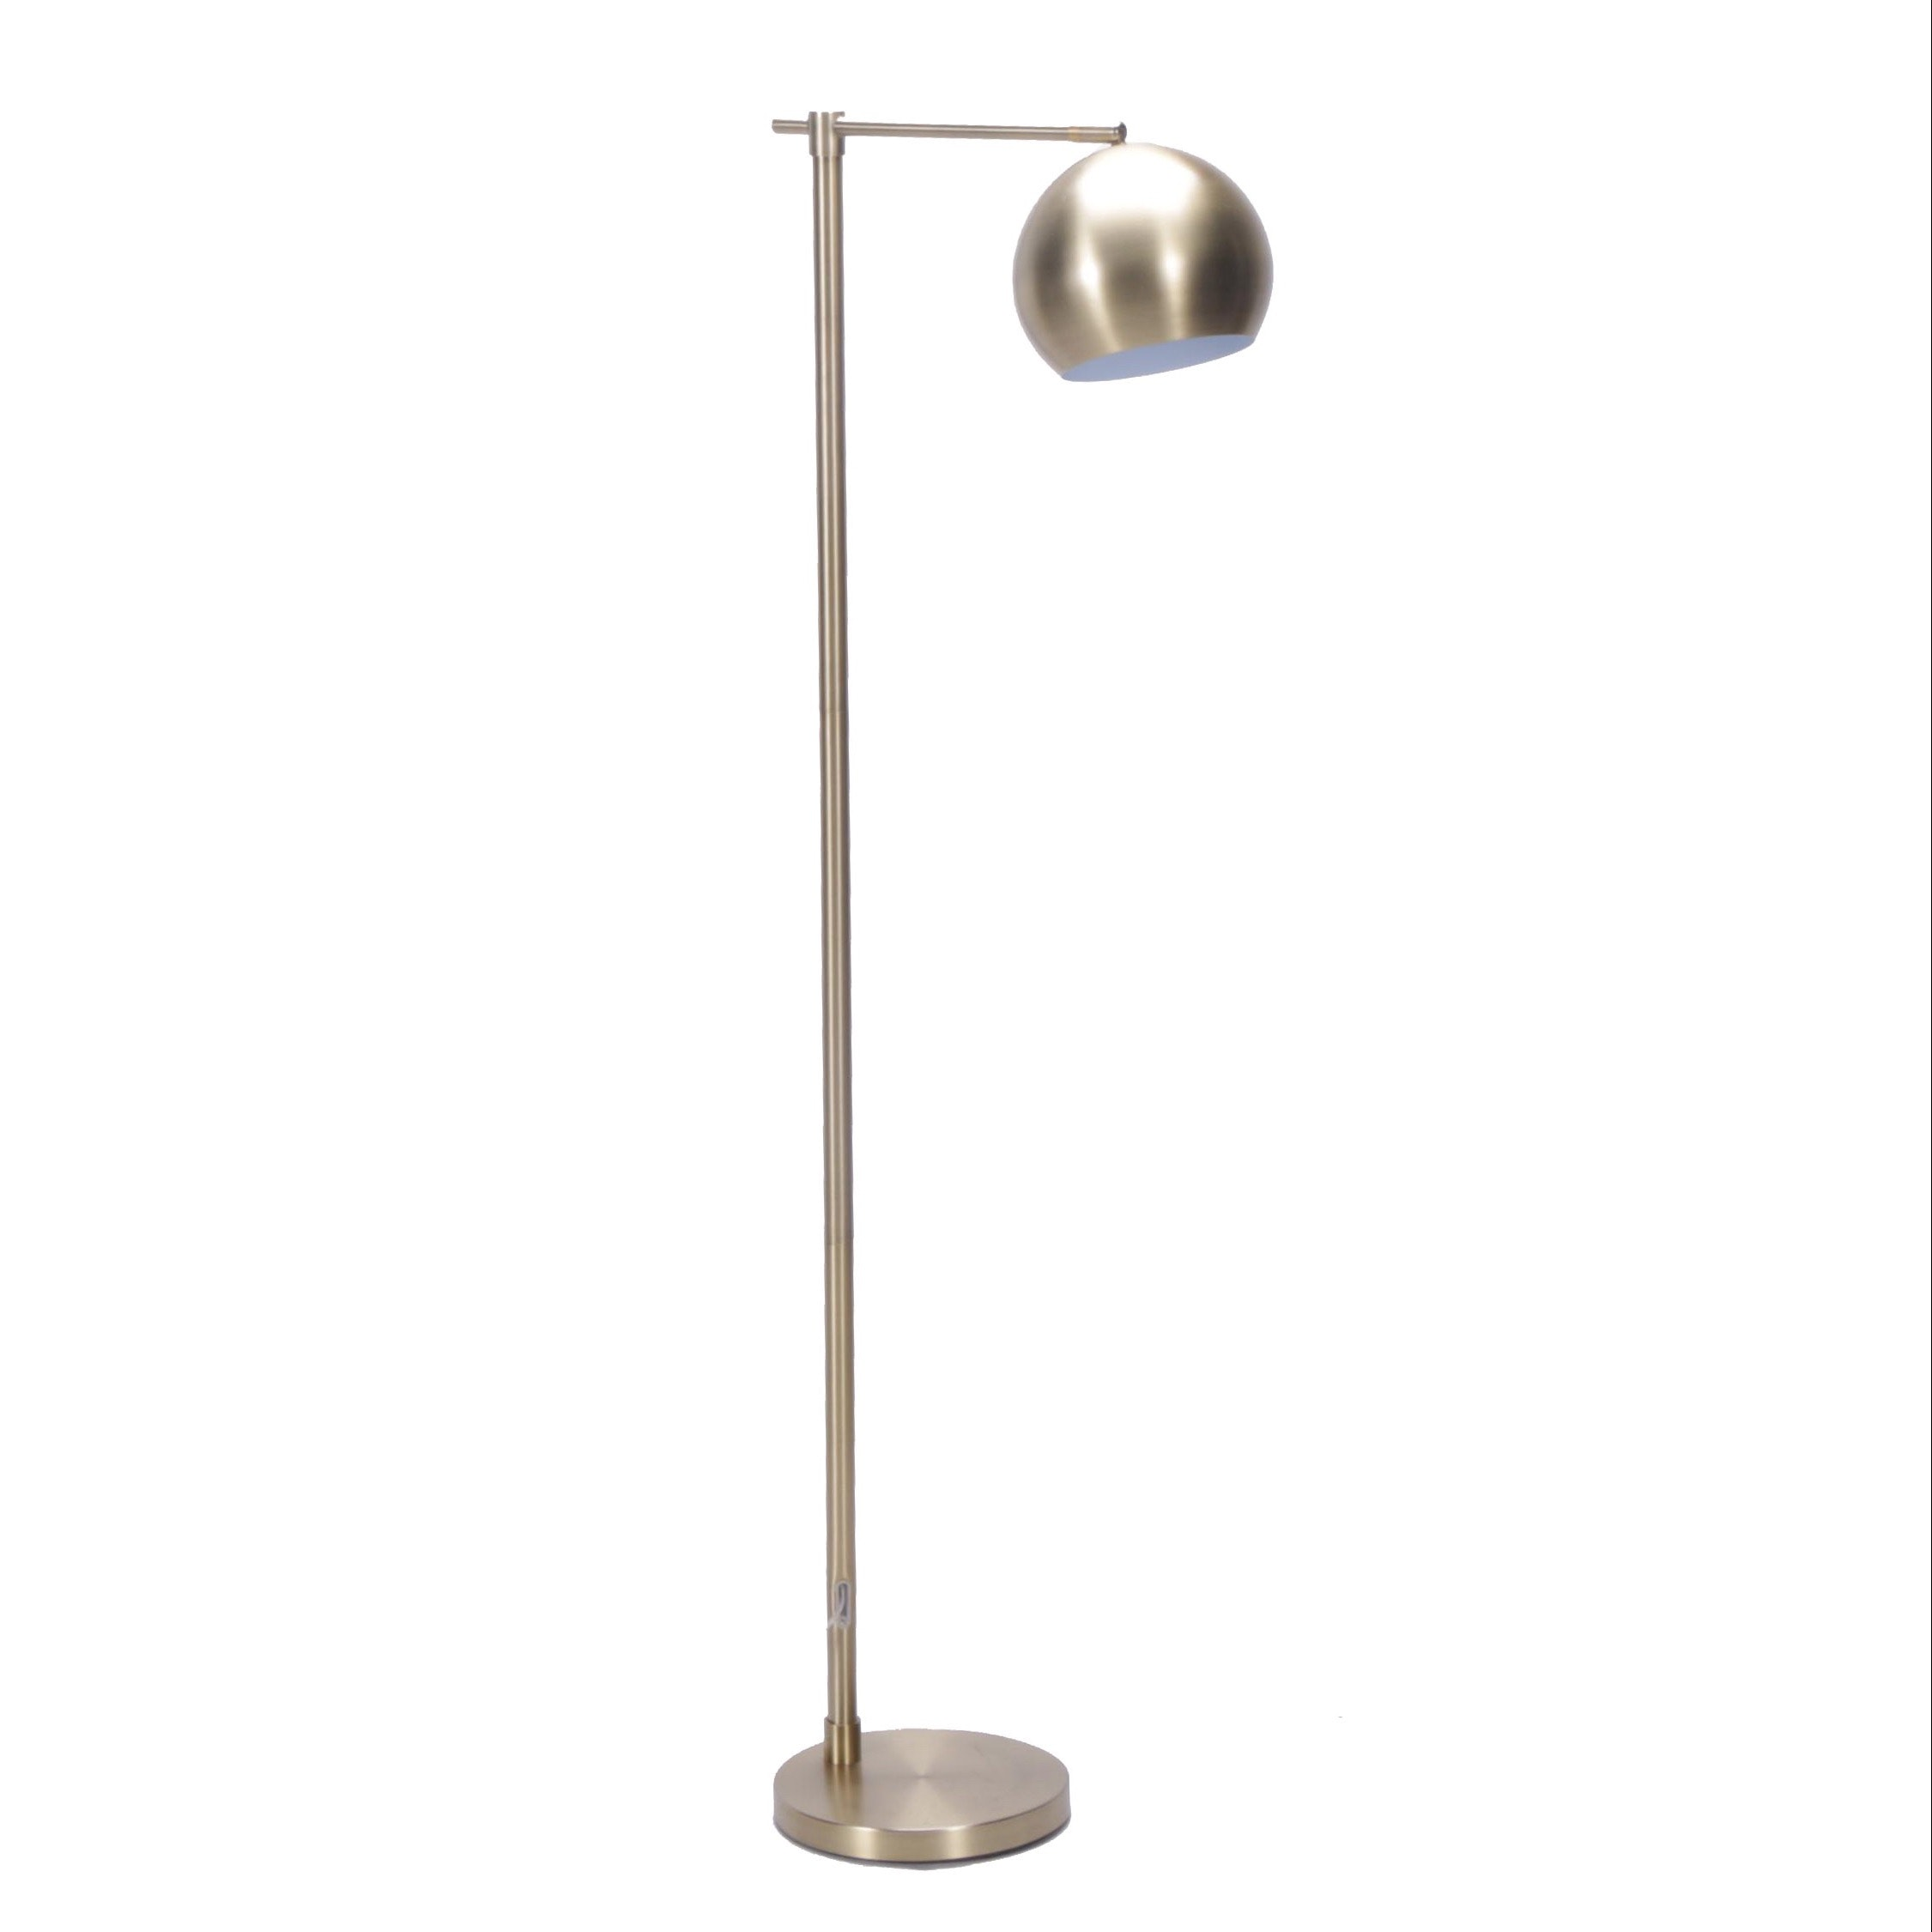 Hextra Gold Tone Stainless Steel Modern Style Floor Lamp